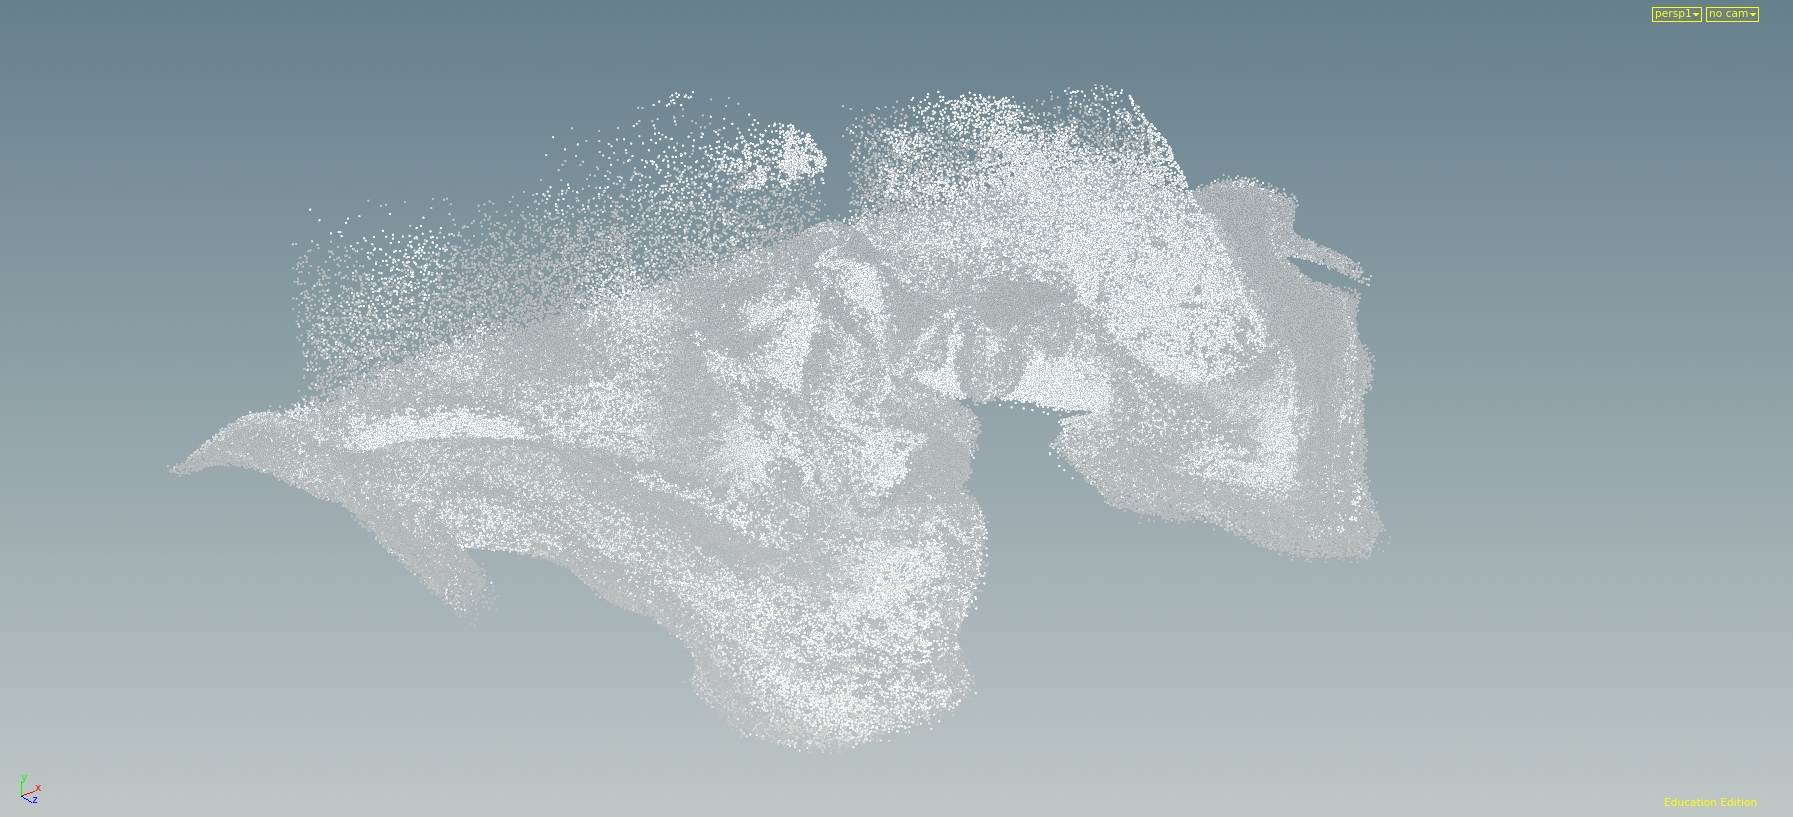 Selecting edges of fluid particles - General Houdini Questions - od